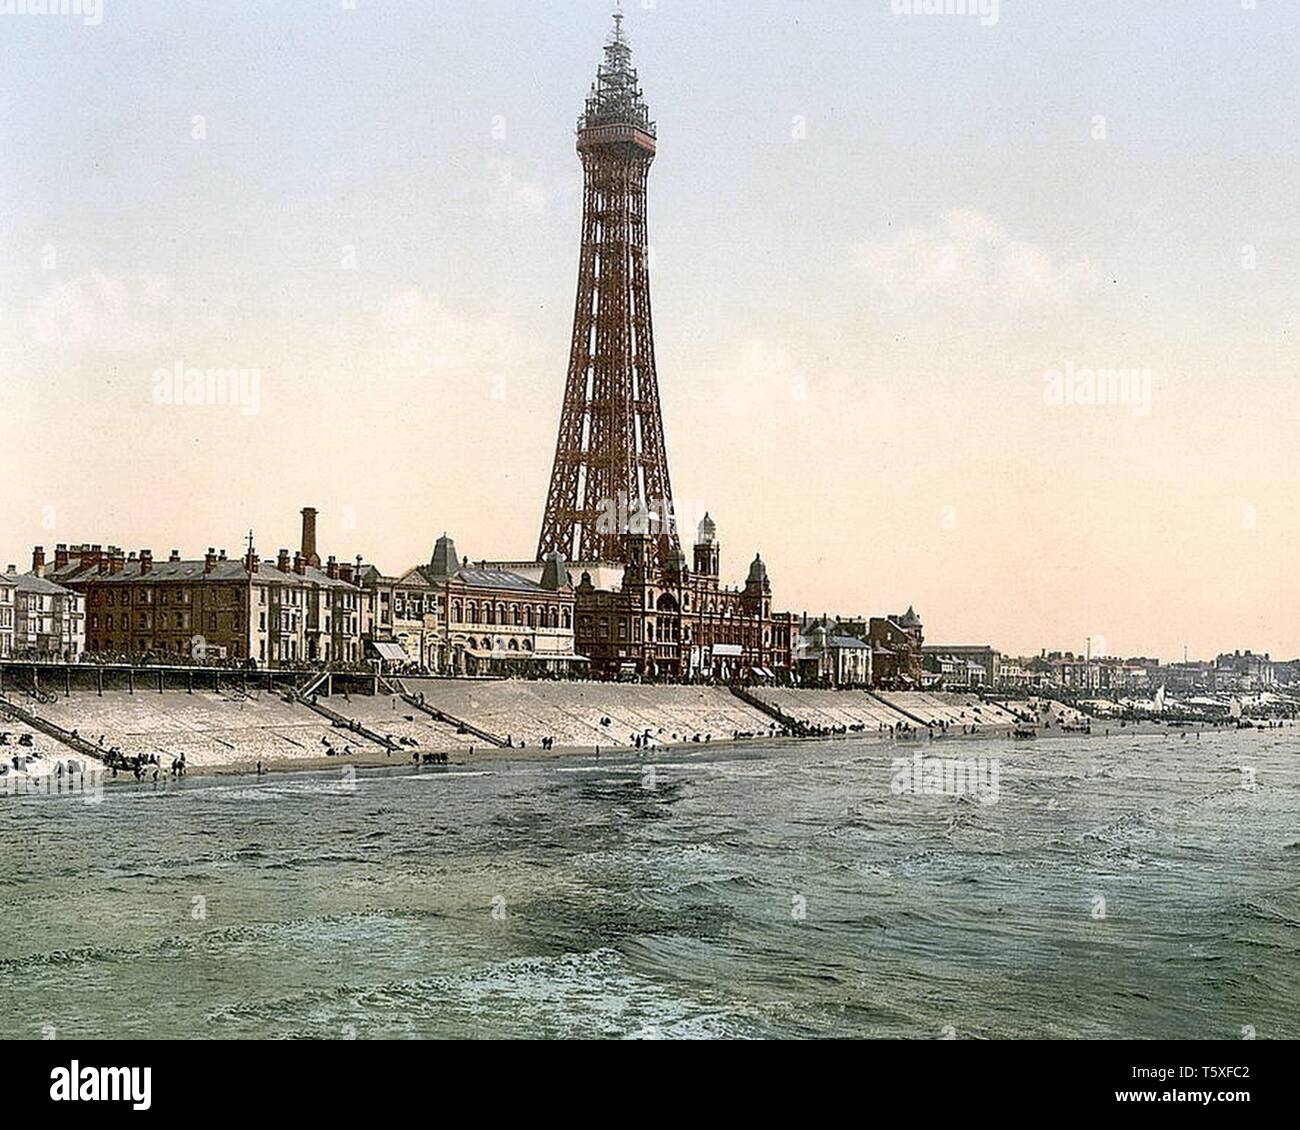 Blackpool Promenade and Tower from North Pier, Blackpool, Lancashire, England. Between 1890 & 1910. Stock Photo